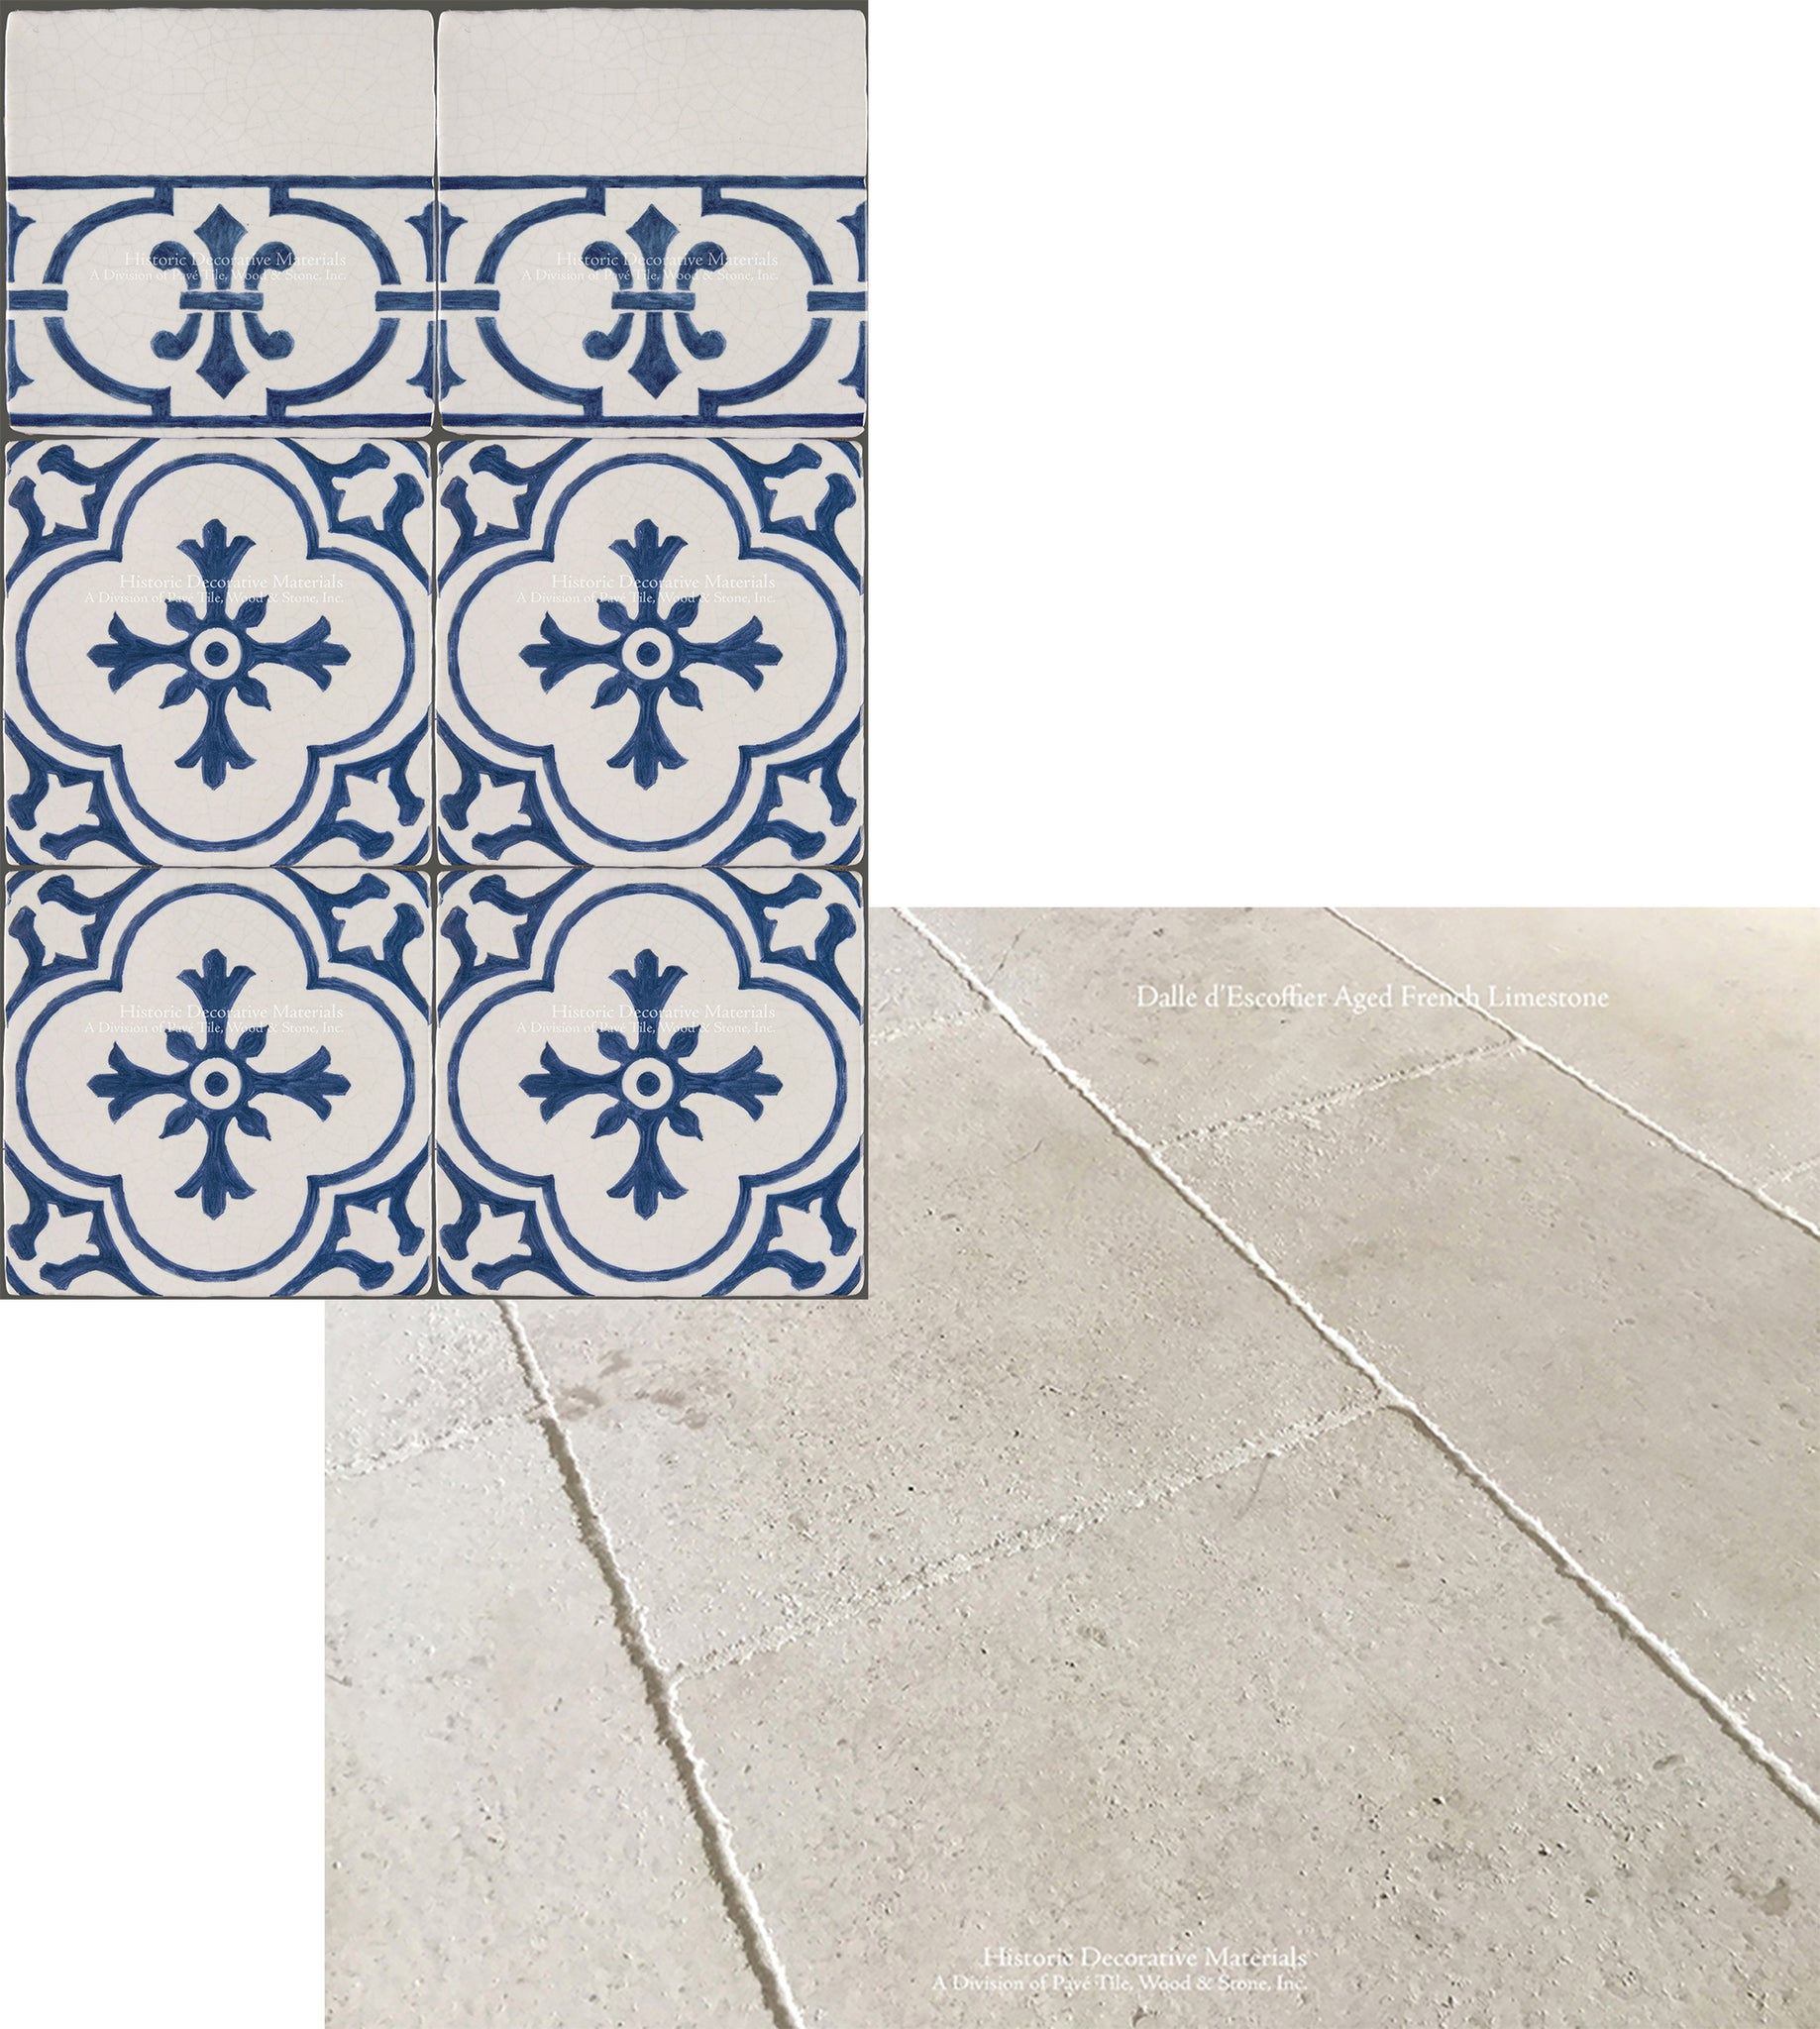 French Limestone Flooring and Decorative Blue and White Kitchen Wall Tiles